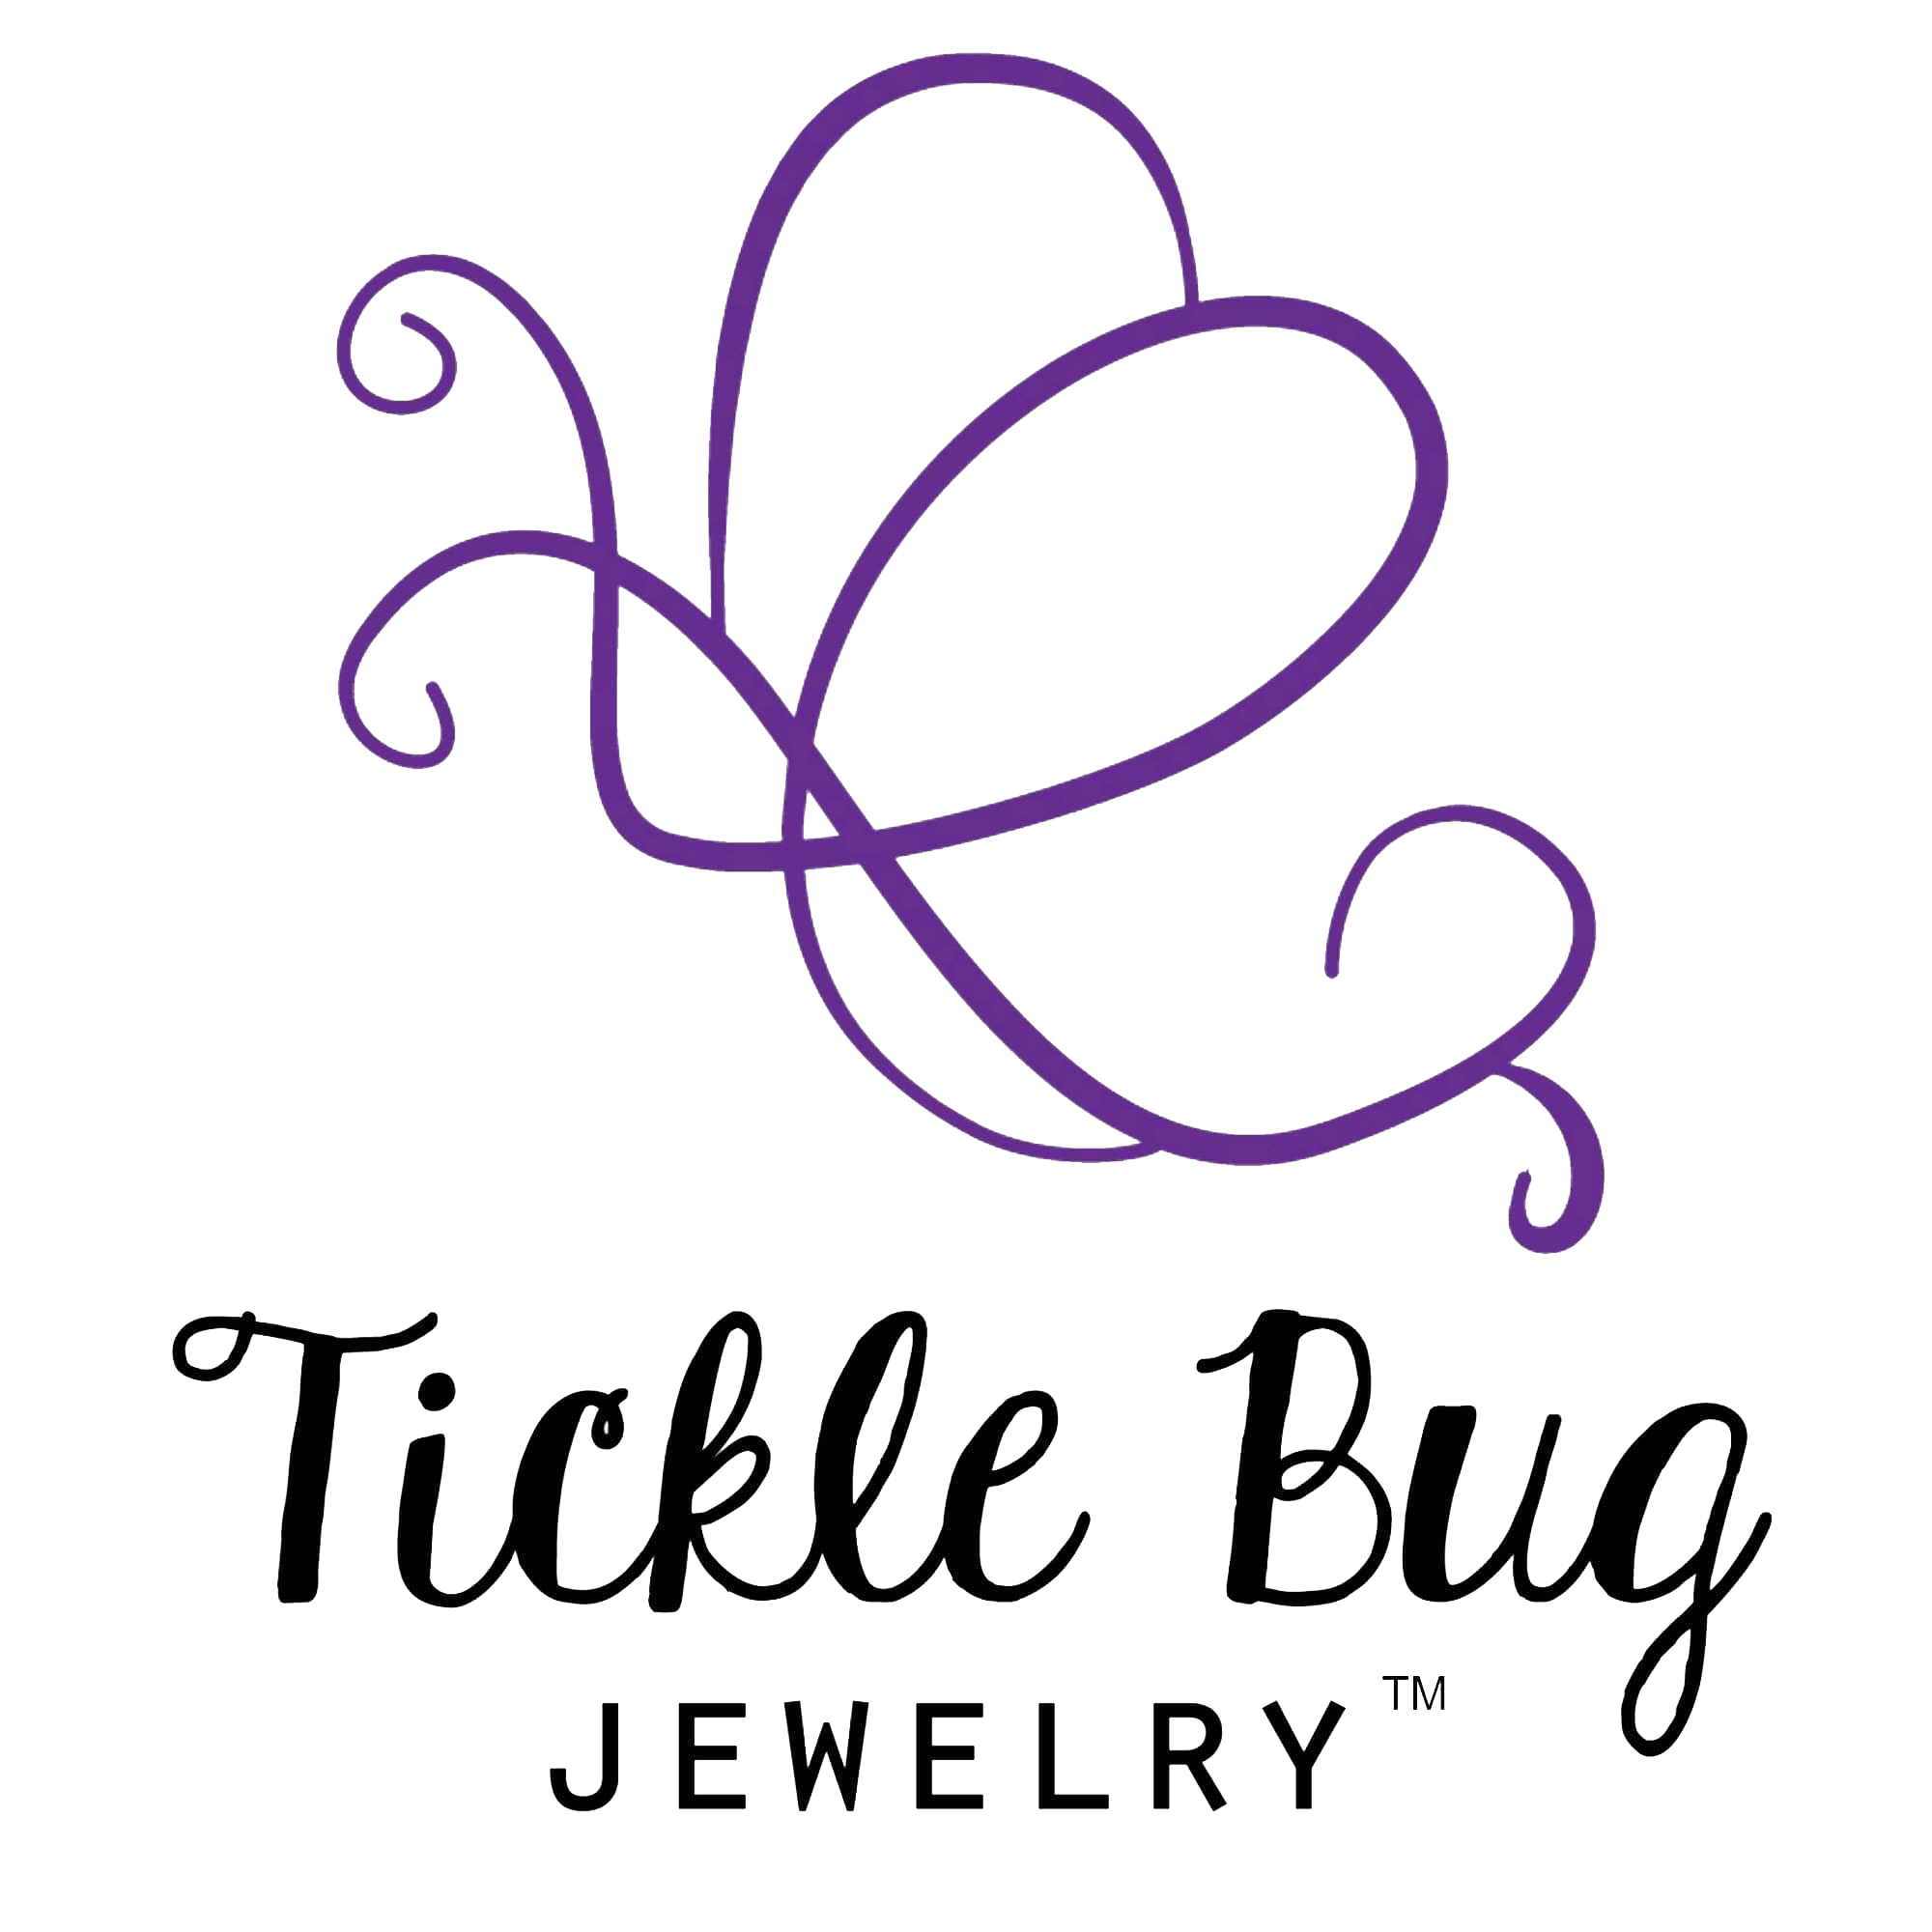 Tickle Bug Jewelry logo